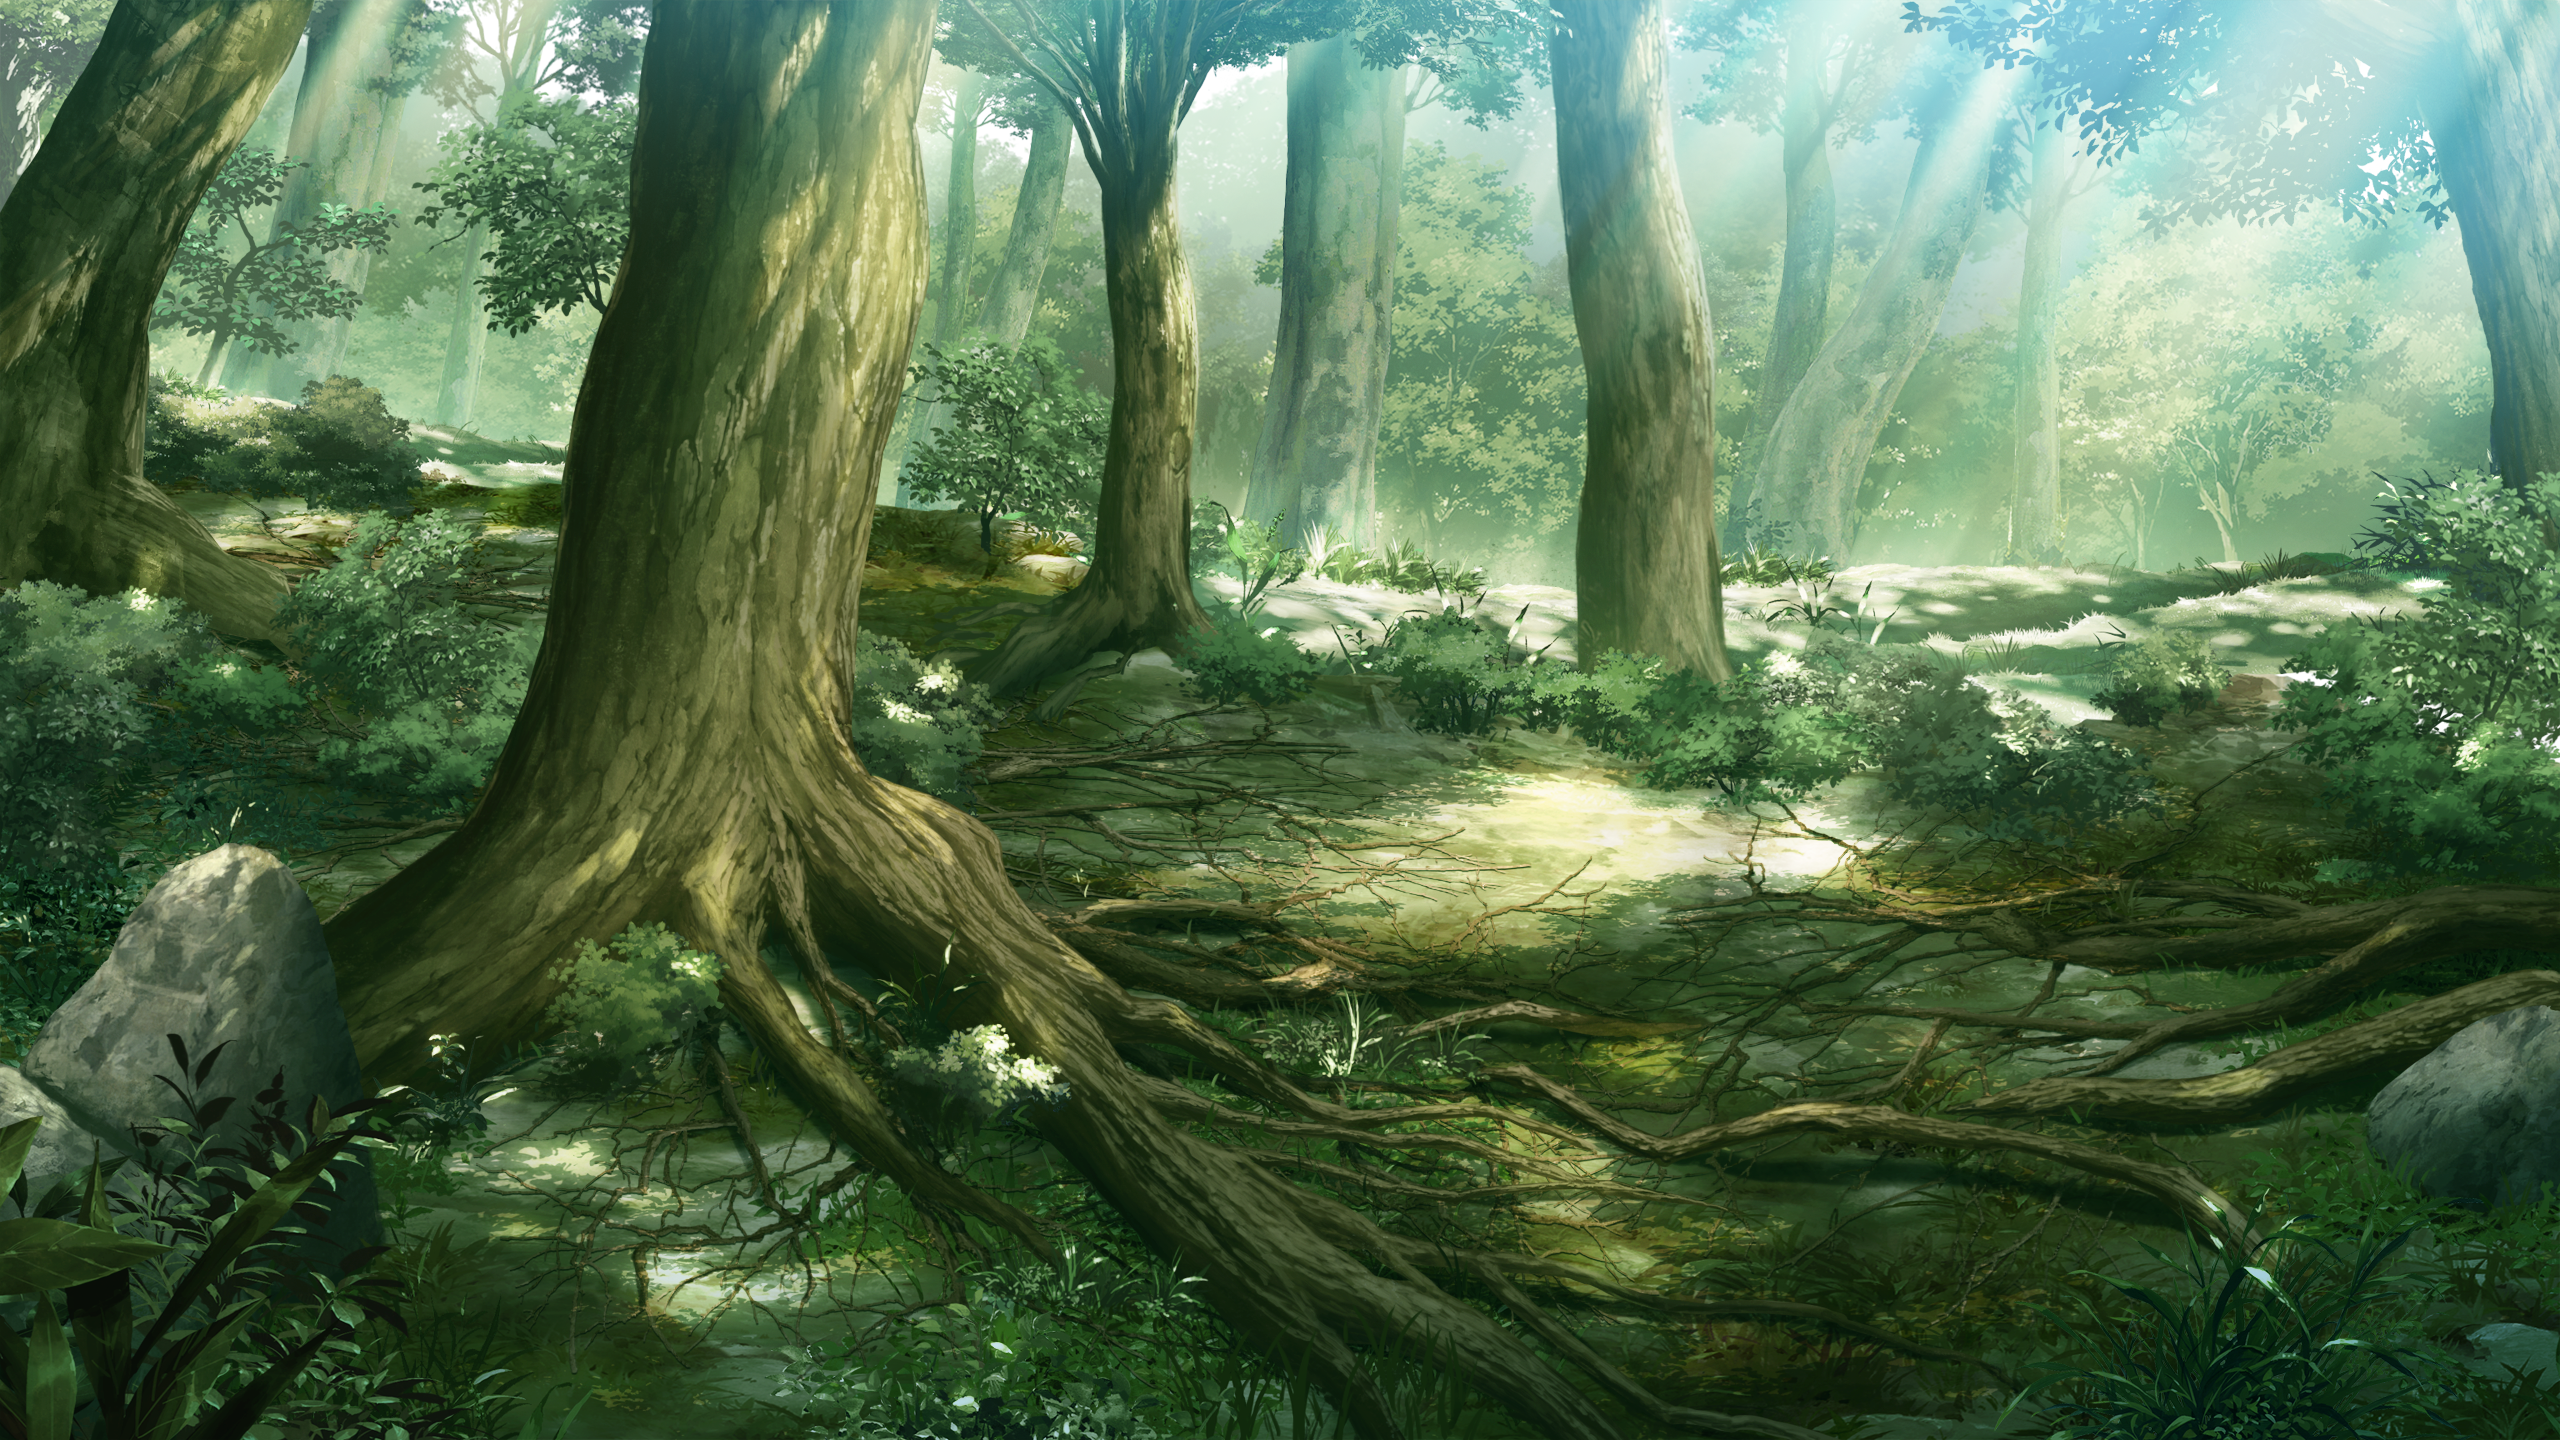 Nature Forest Scenic Game Cg Grisaia No Kajitsu Fresh New Hd Wallpaper Png 2560 1440 Forest Scenery Anime Scenery Scenery Wallpaper